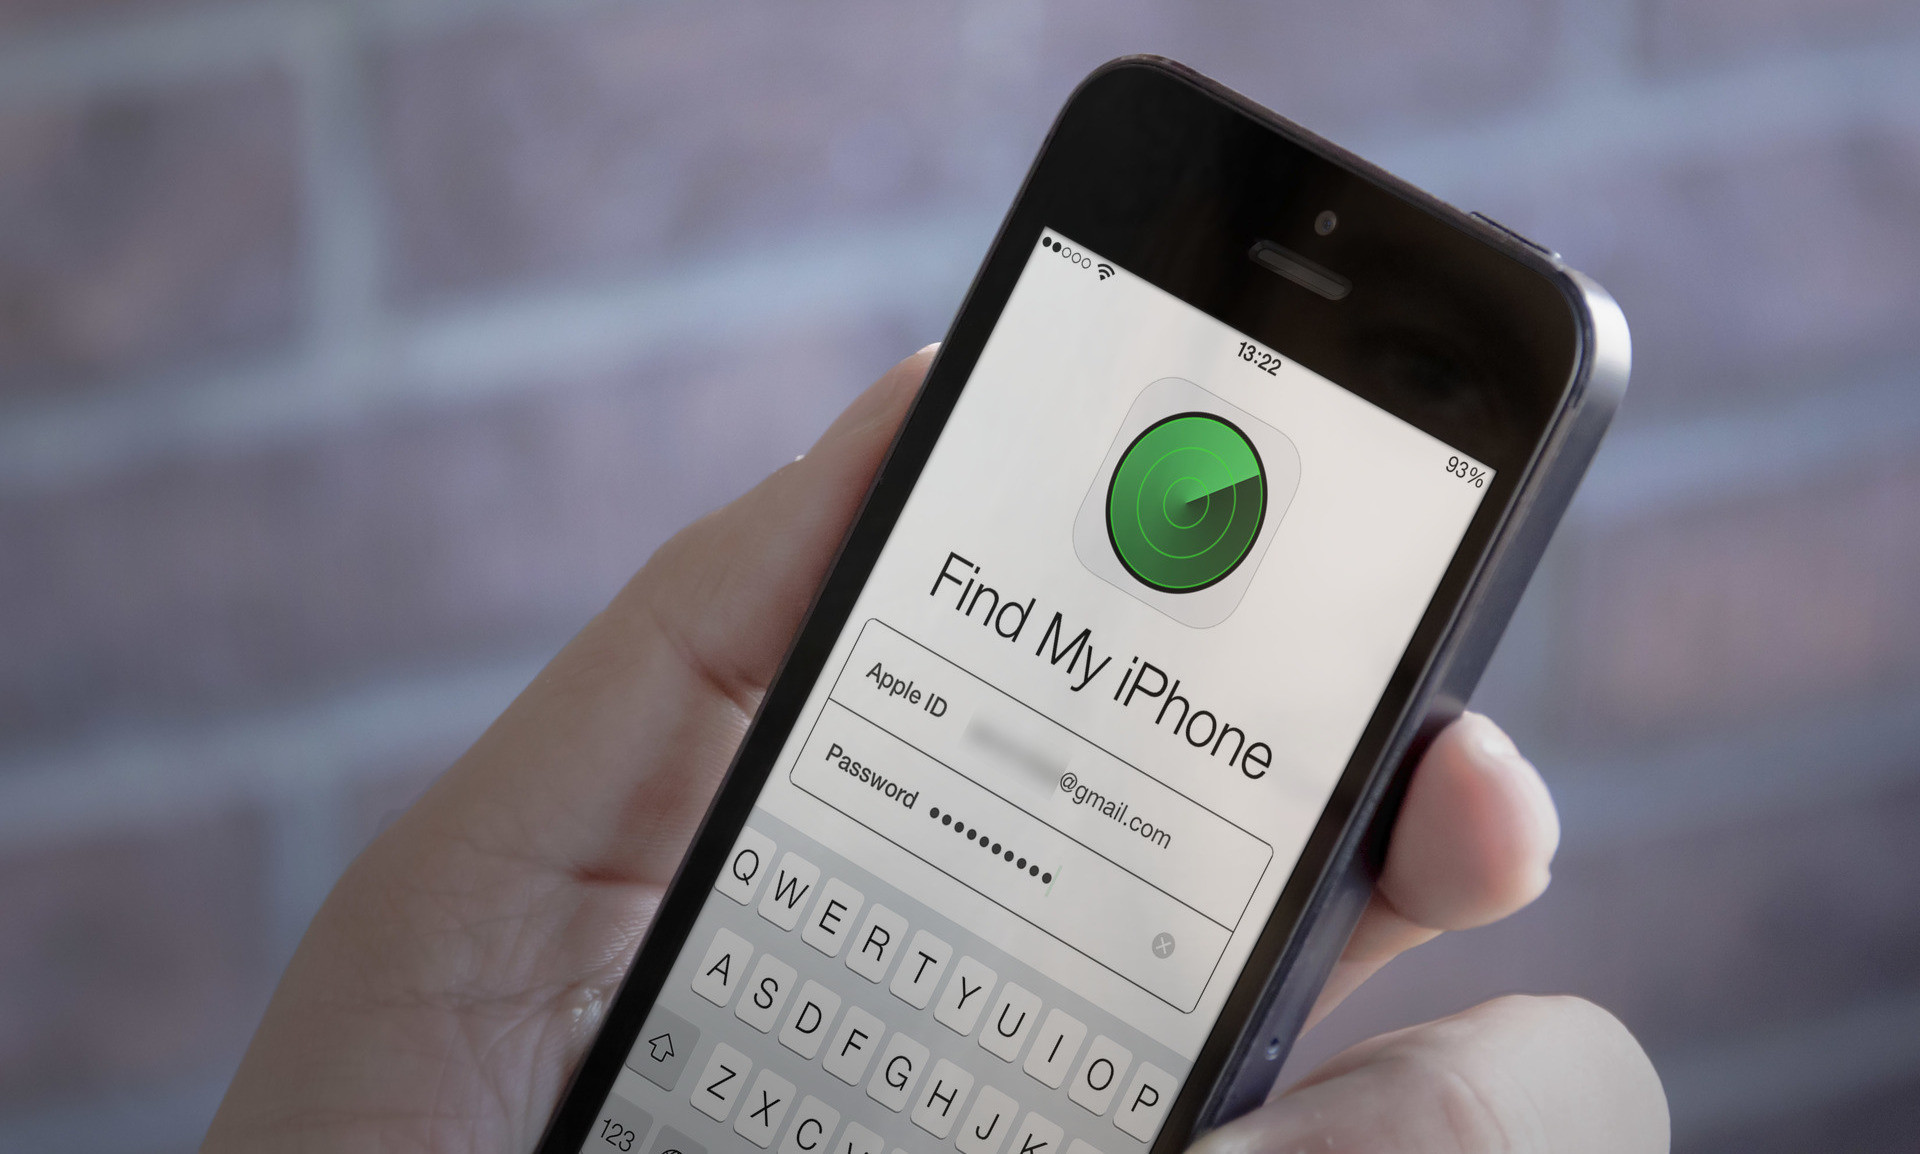 How to Use Find My iPhone on iOS Devices